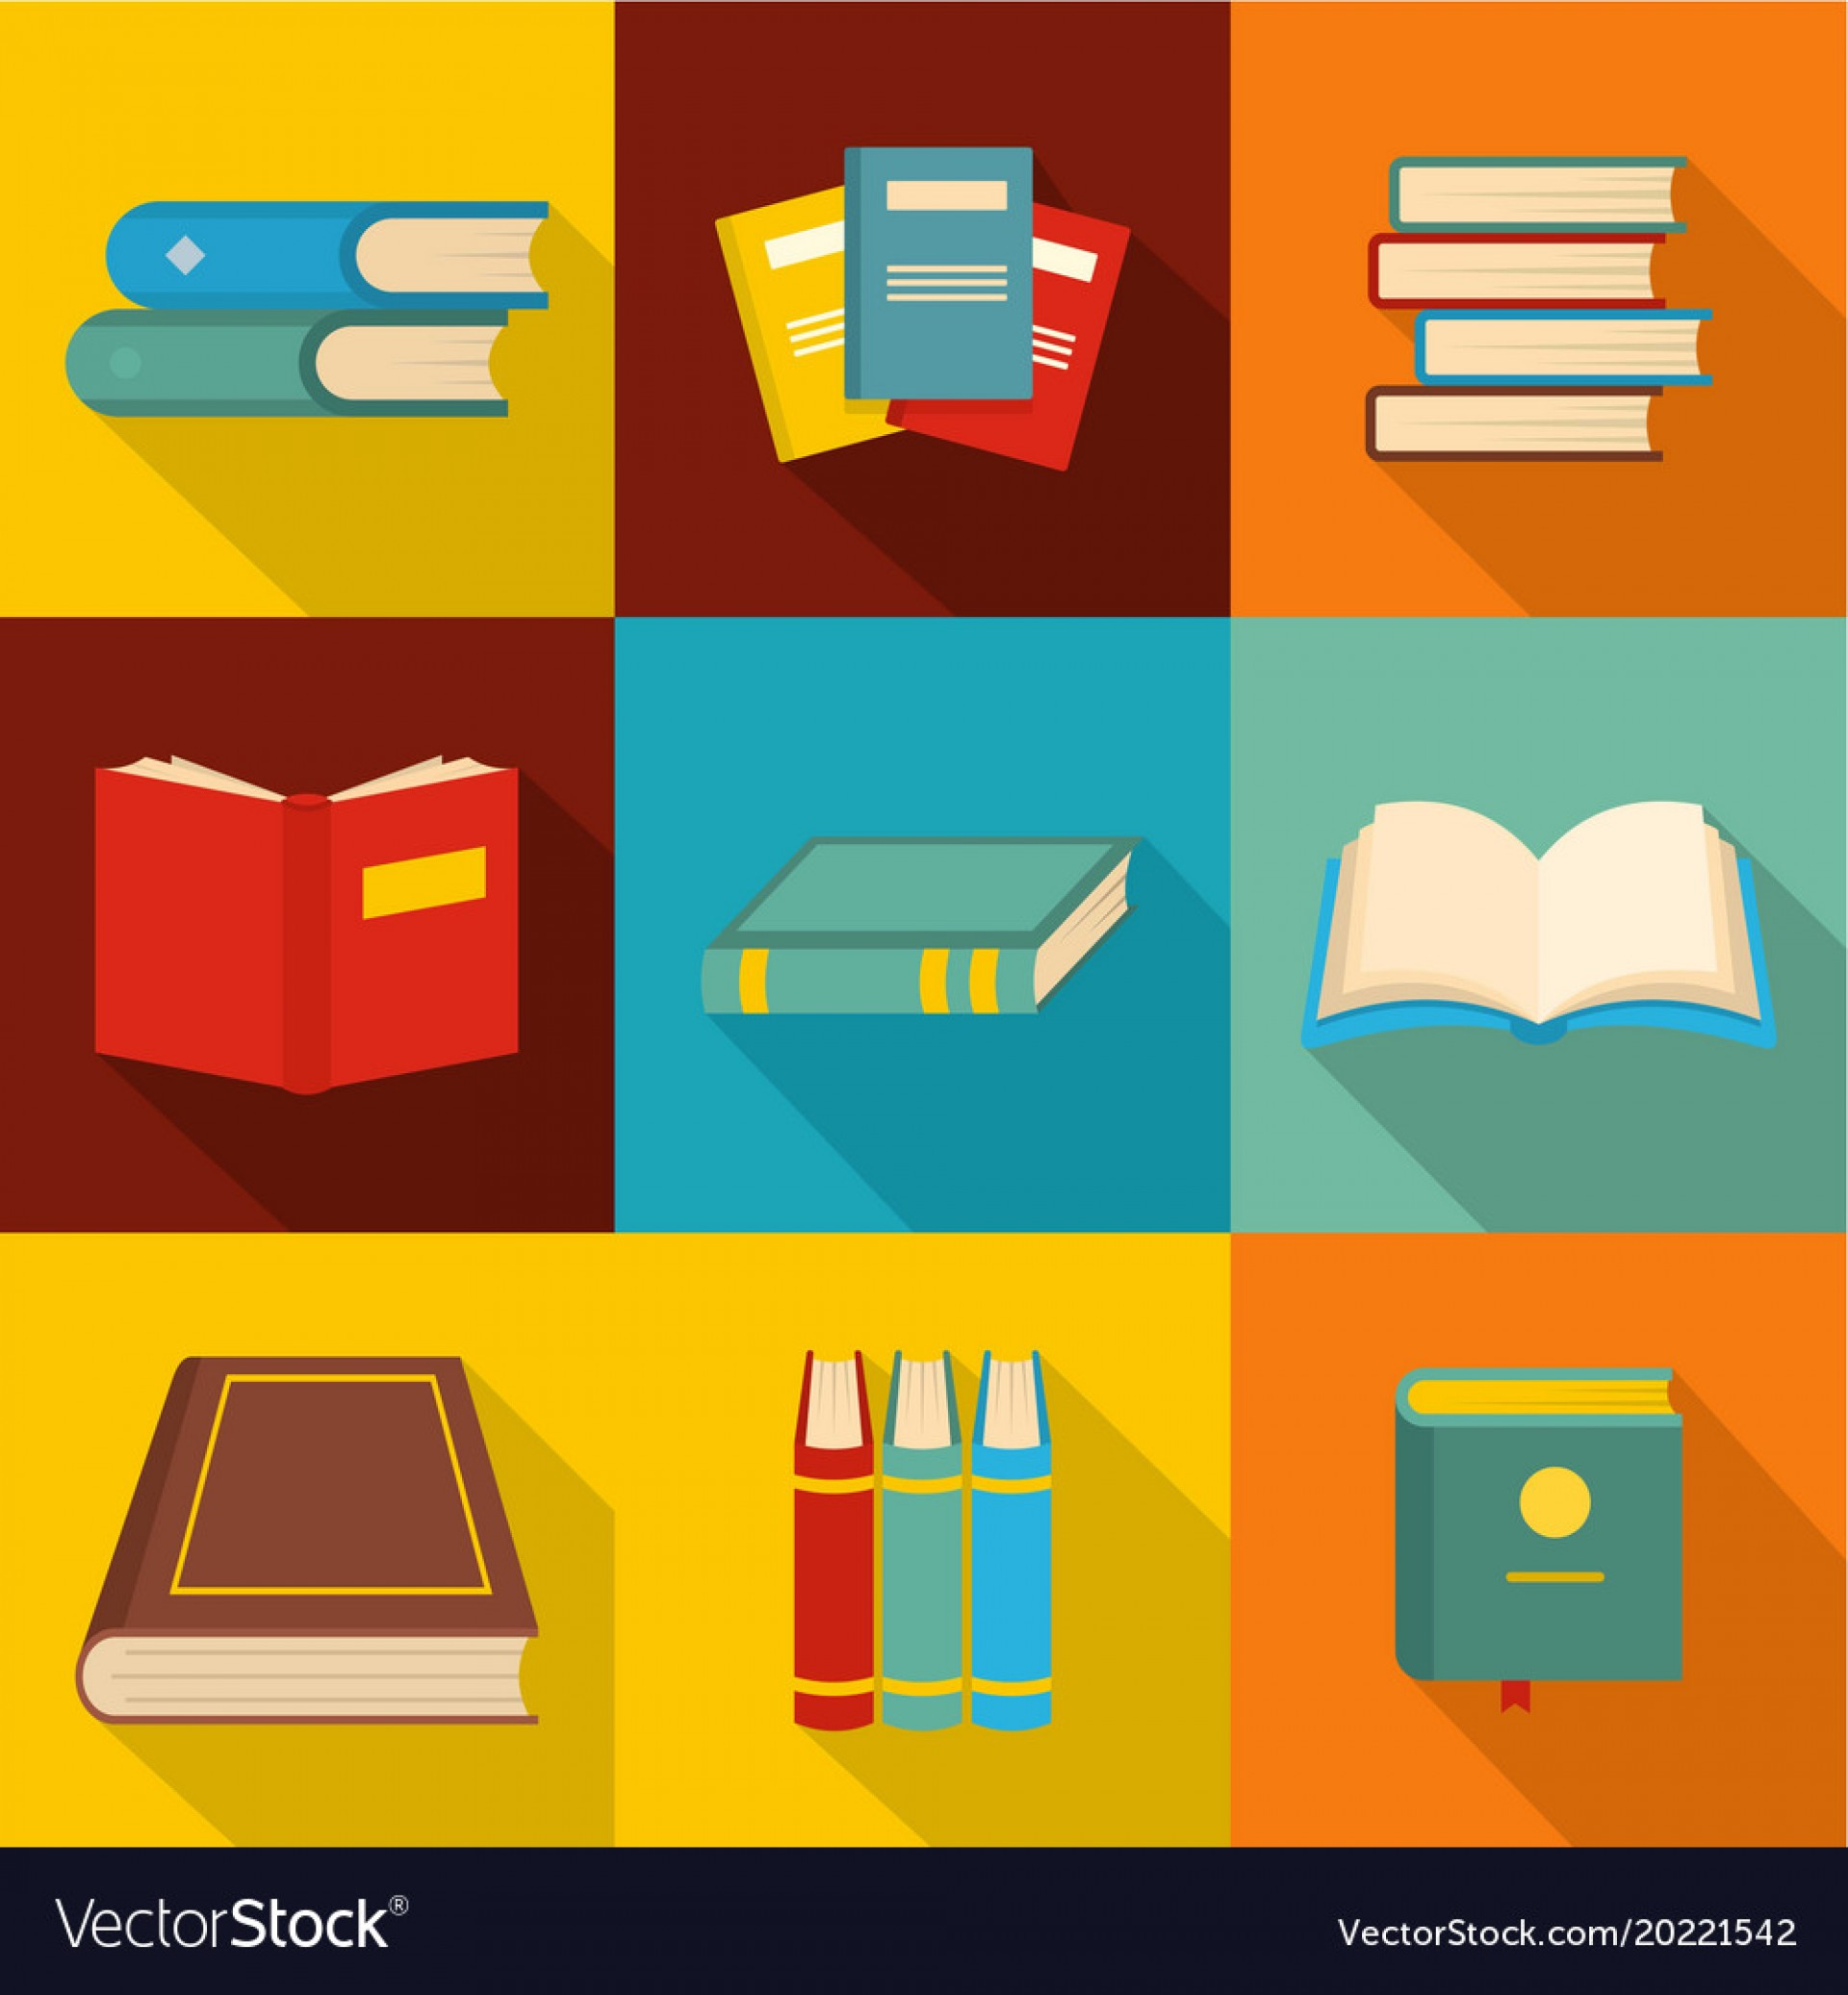 023 Free Research Paper Icons Set Flat Style Vector Awful Science Papers Online Download Websites Get 1920